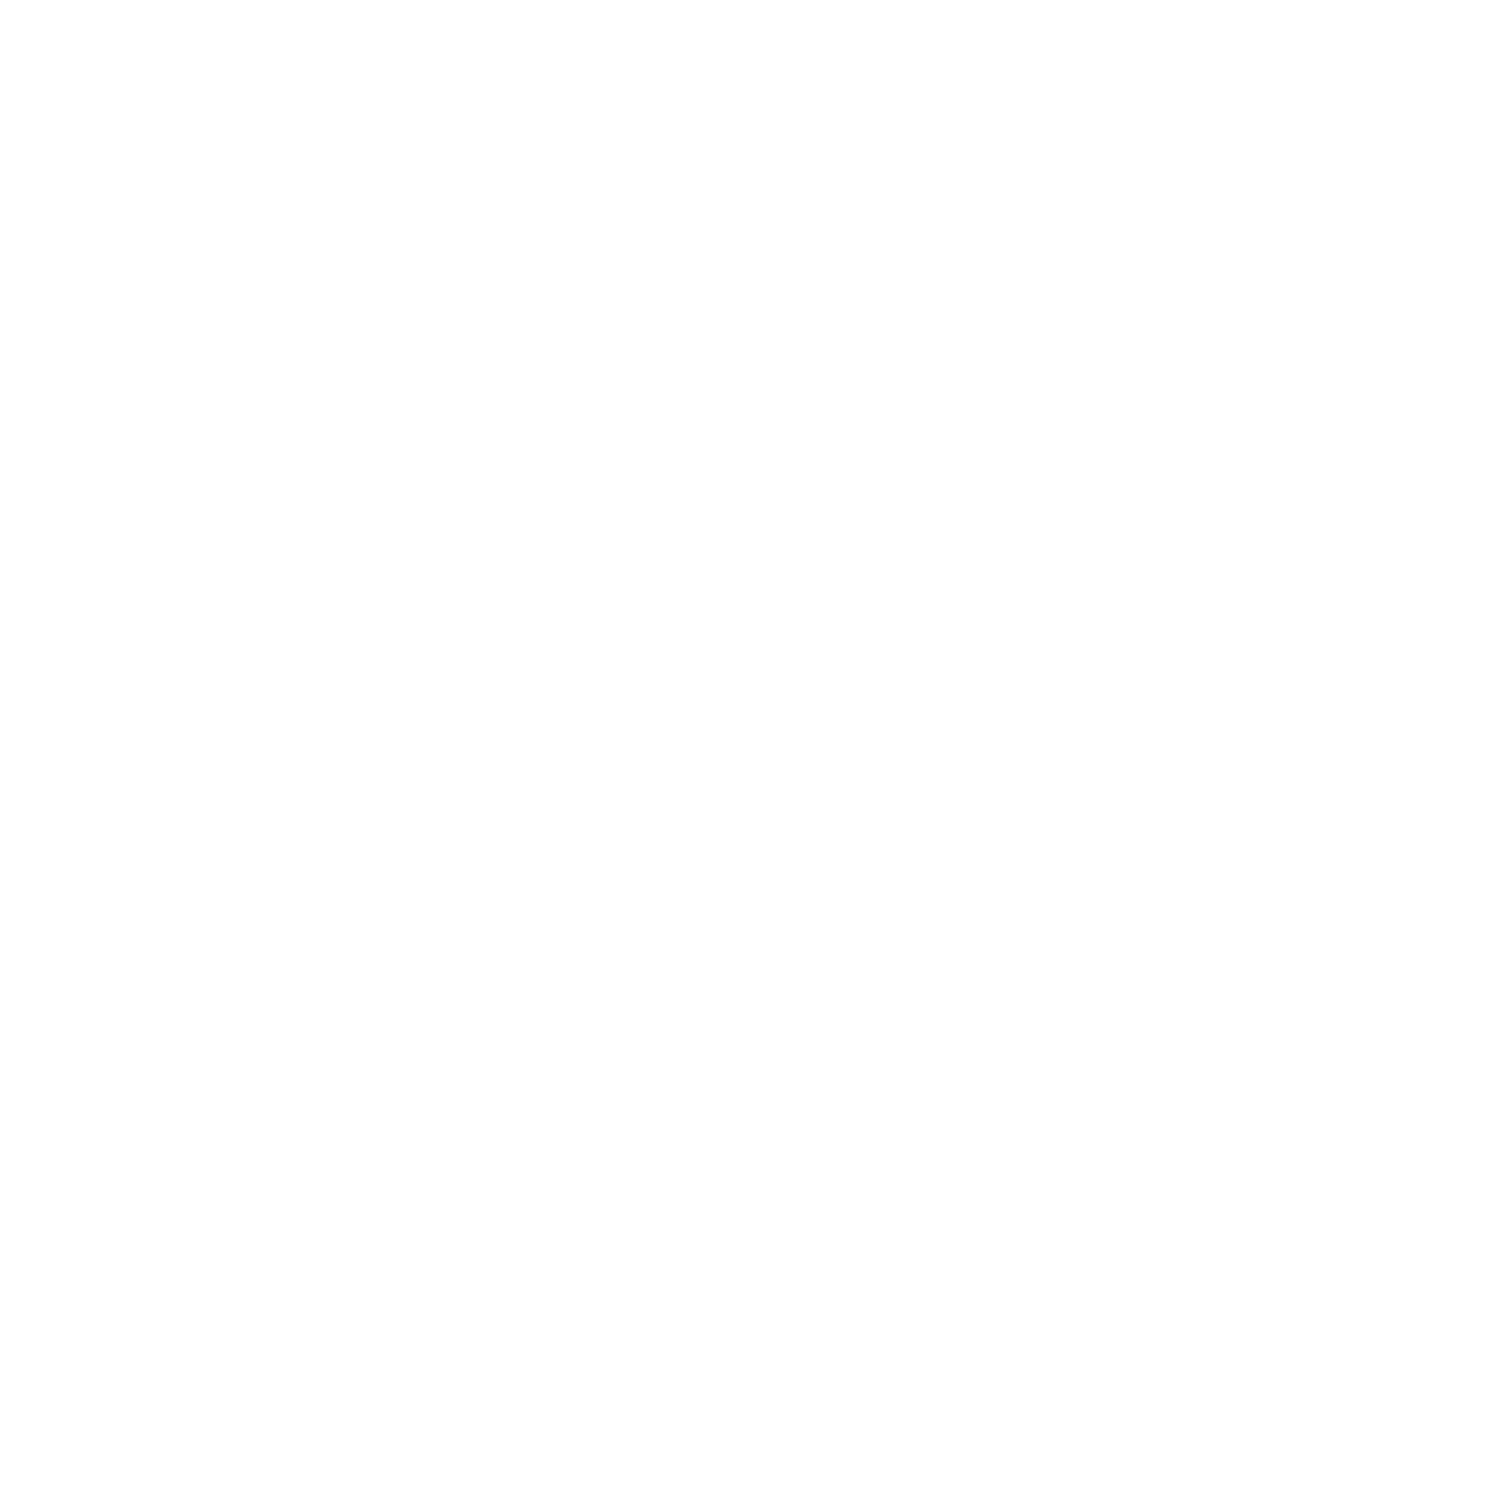 DA LA Wedding Films